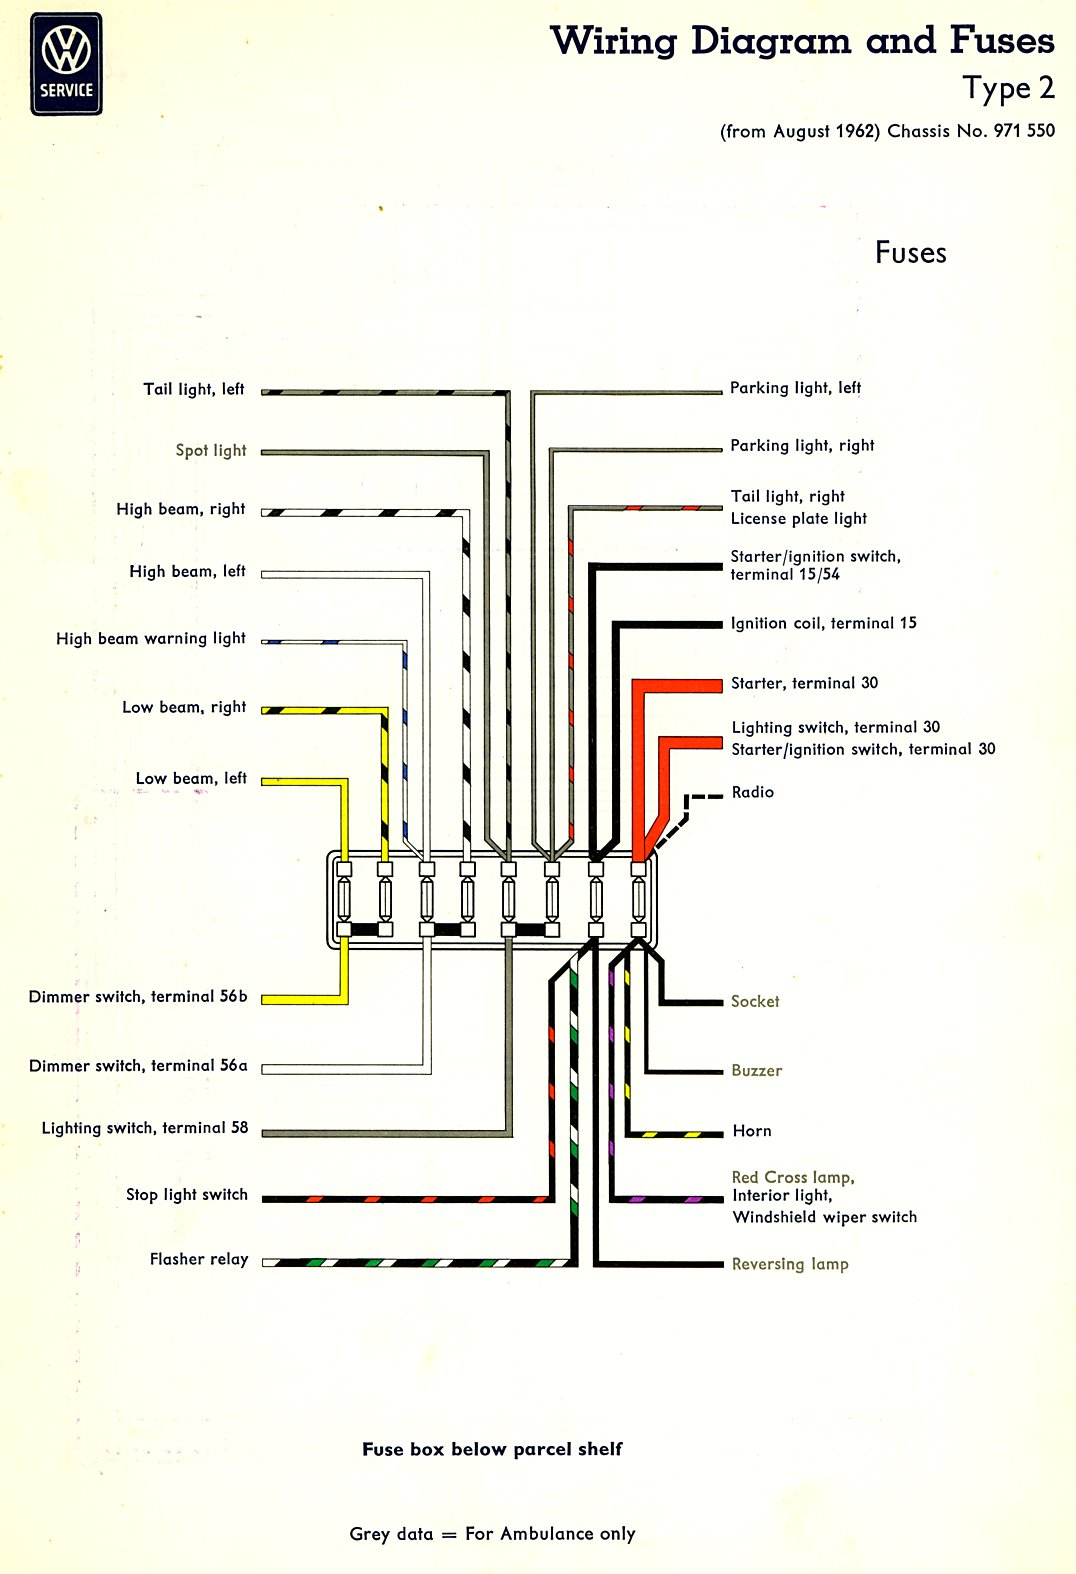 bus_63_fuses thesamba com type 2 wiring diagrams 1979 bronco fuse box diagram at aneh.co